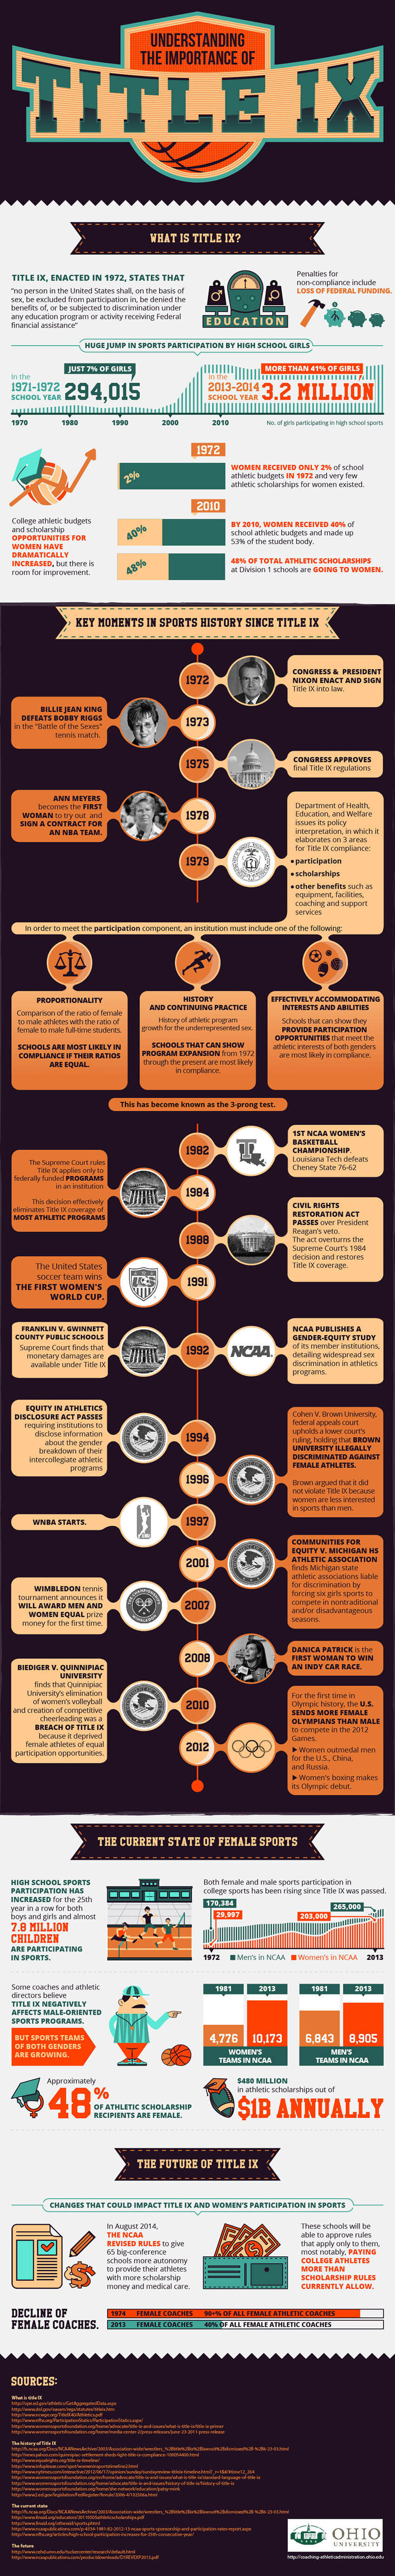 Understanding The Importance of Title IX infographic